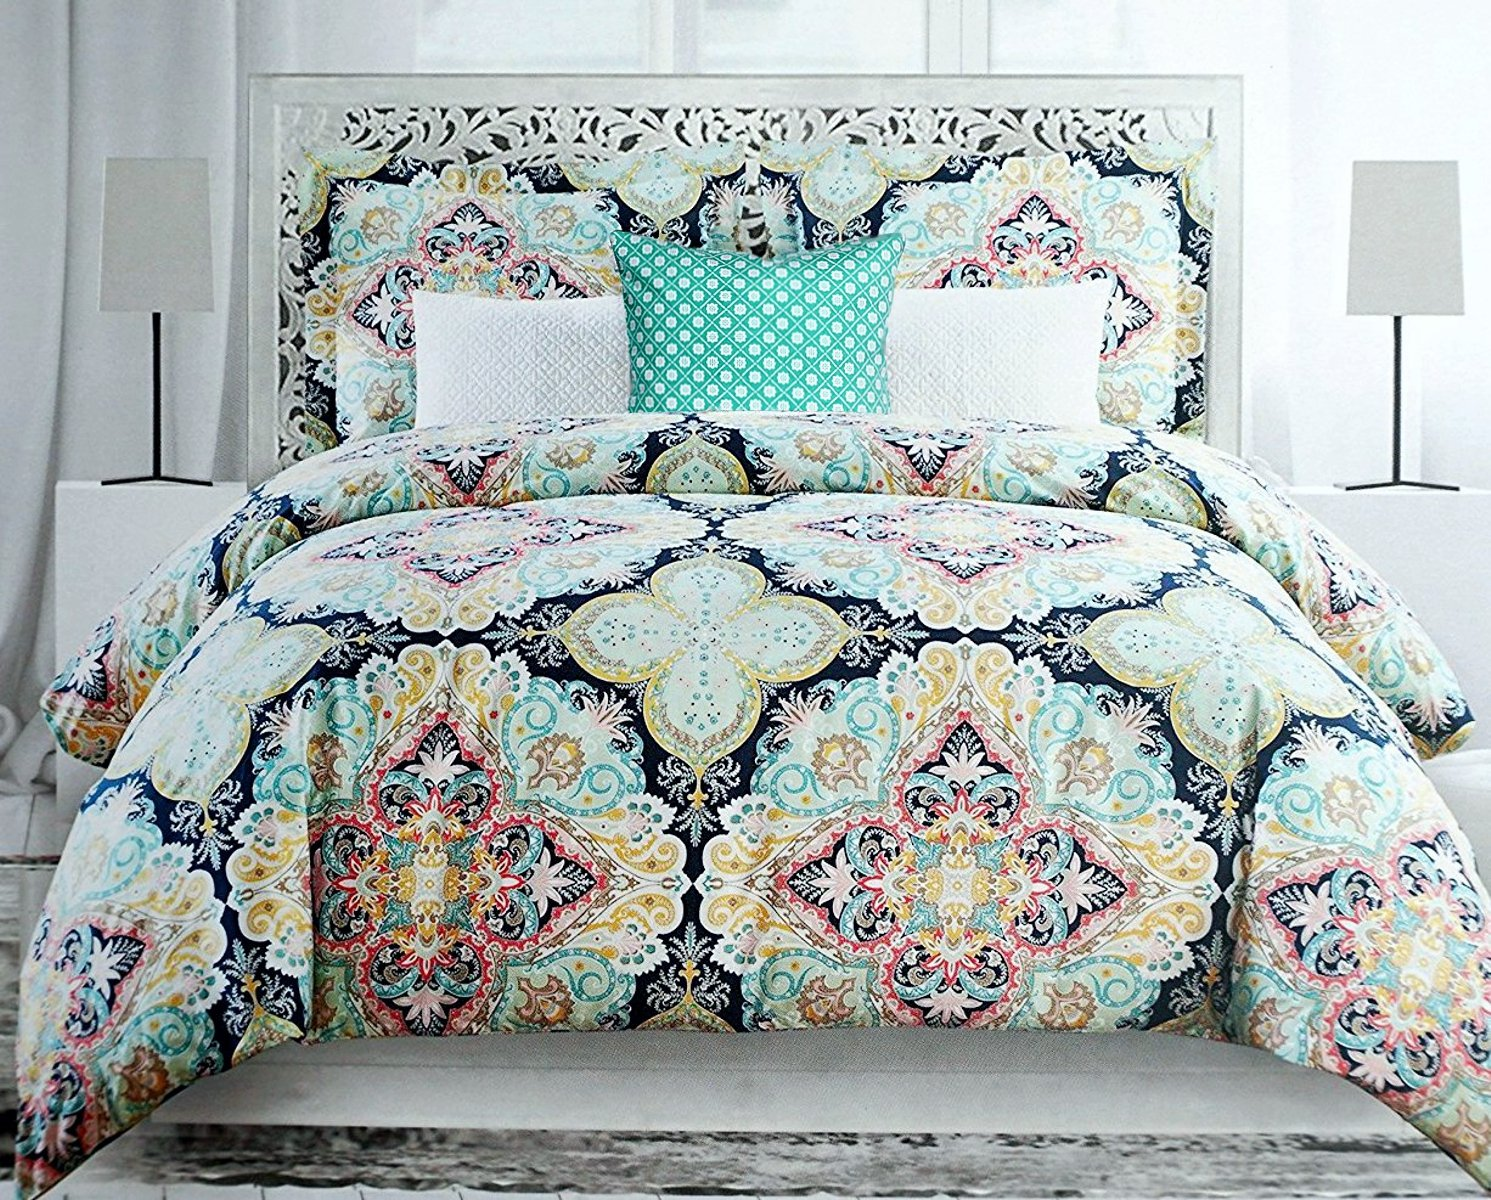 Boho Chic Bedding Www Pixshark Com Images Galleries